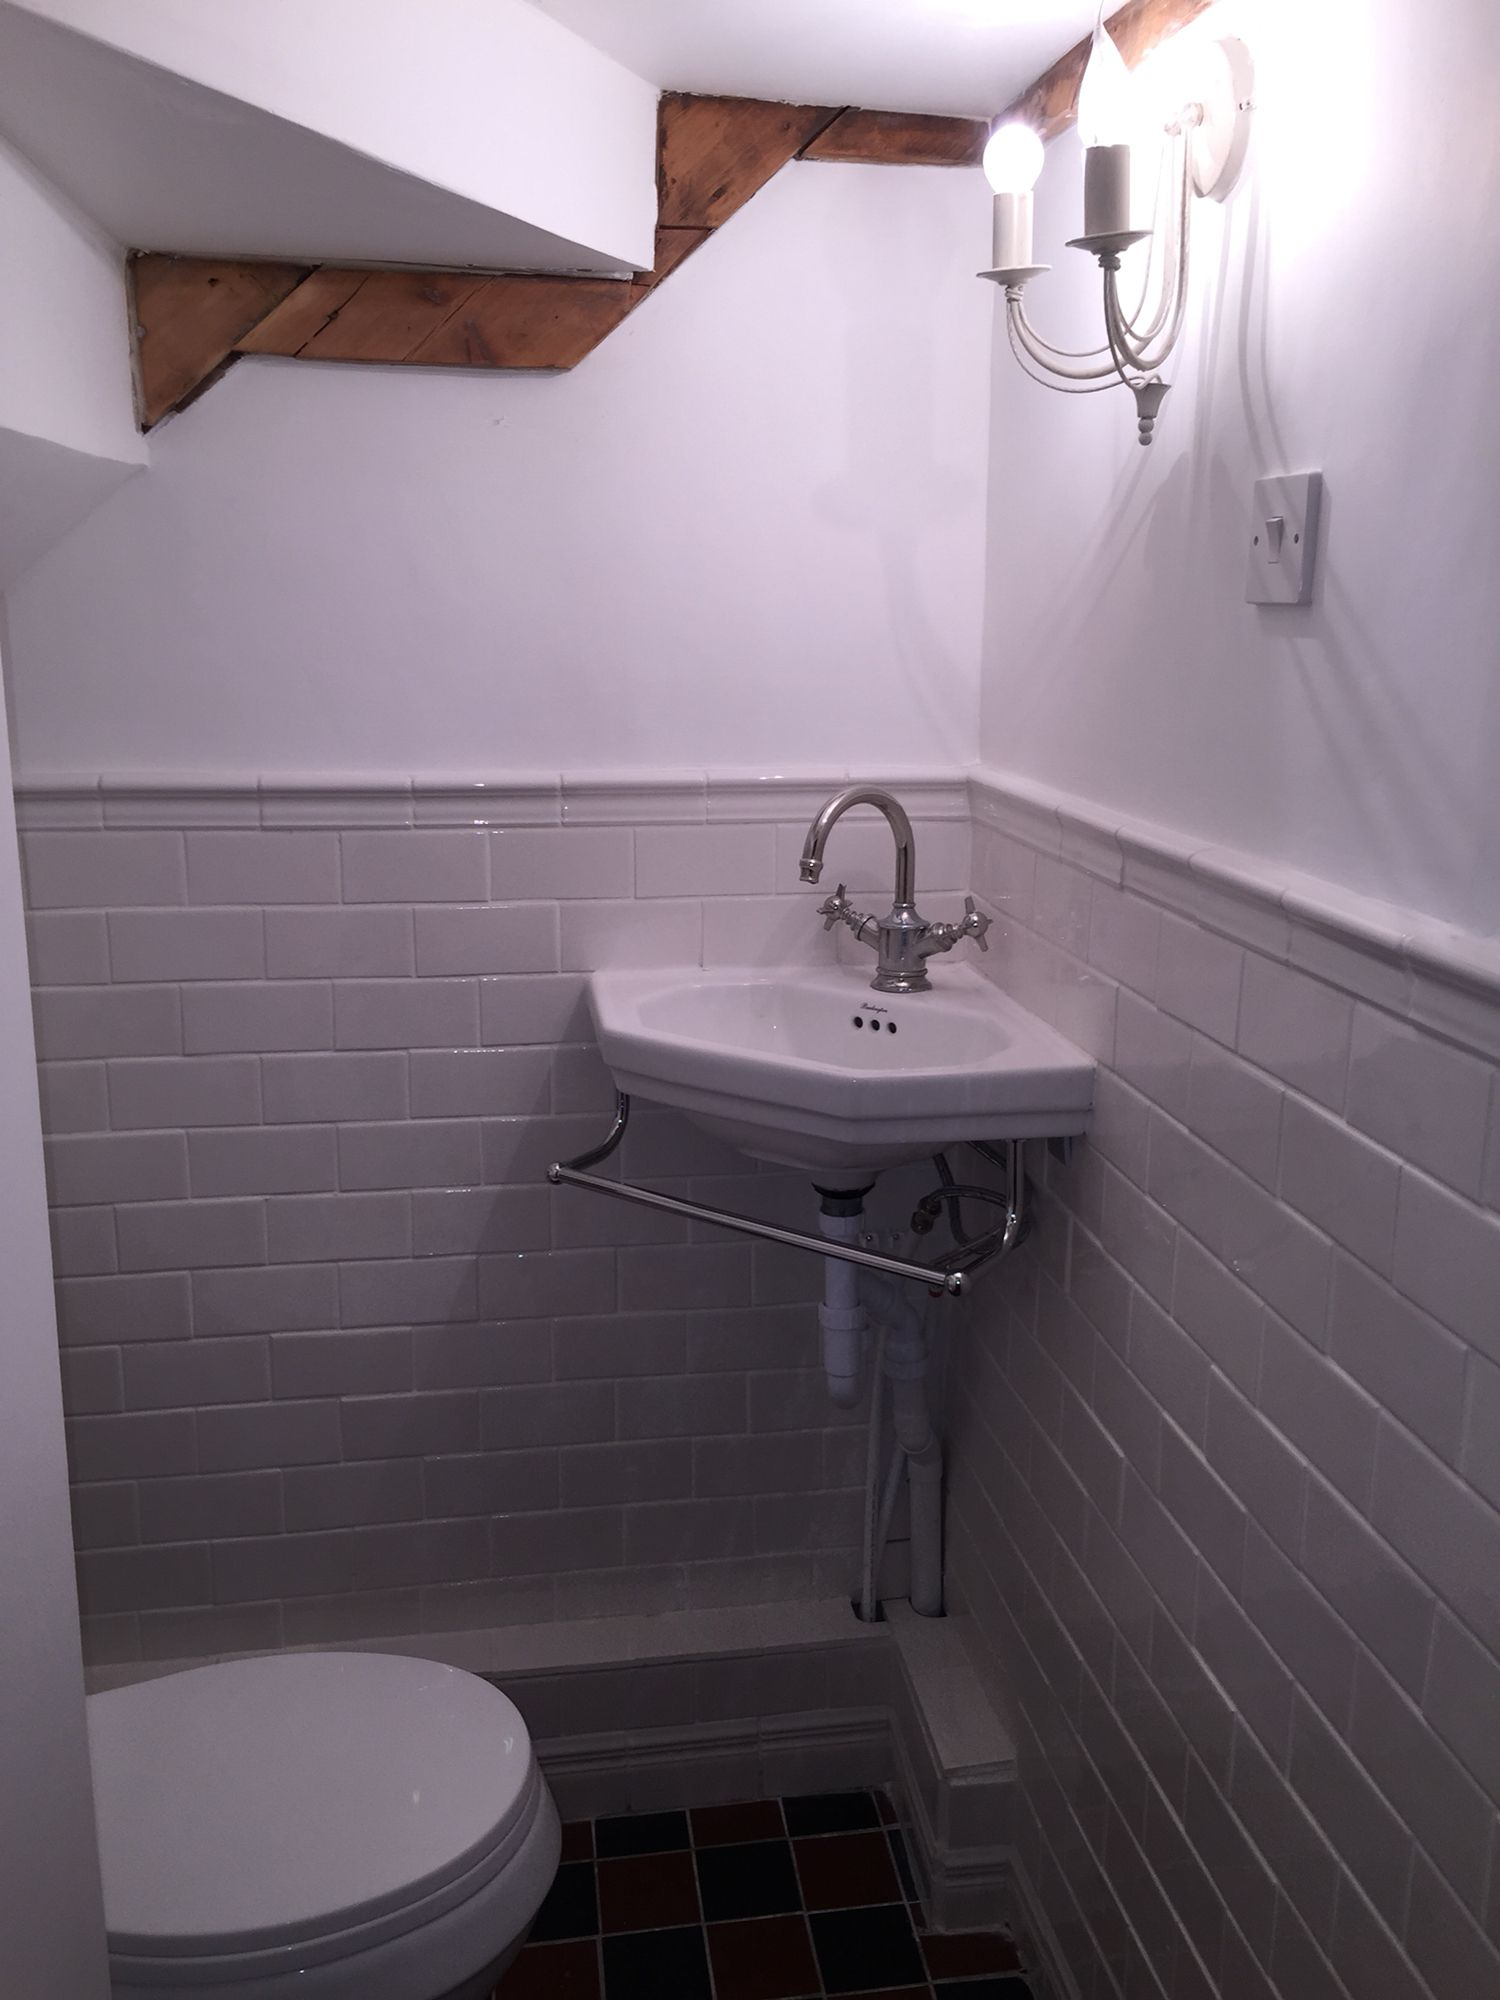 Small under stairs toilet newly built with victorian style ...